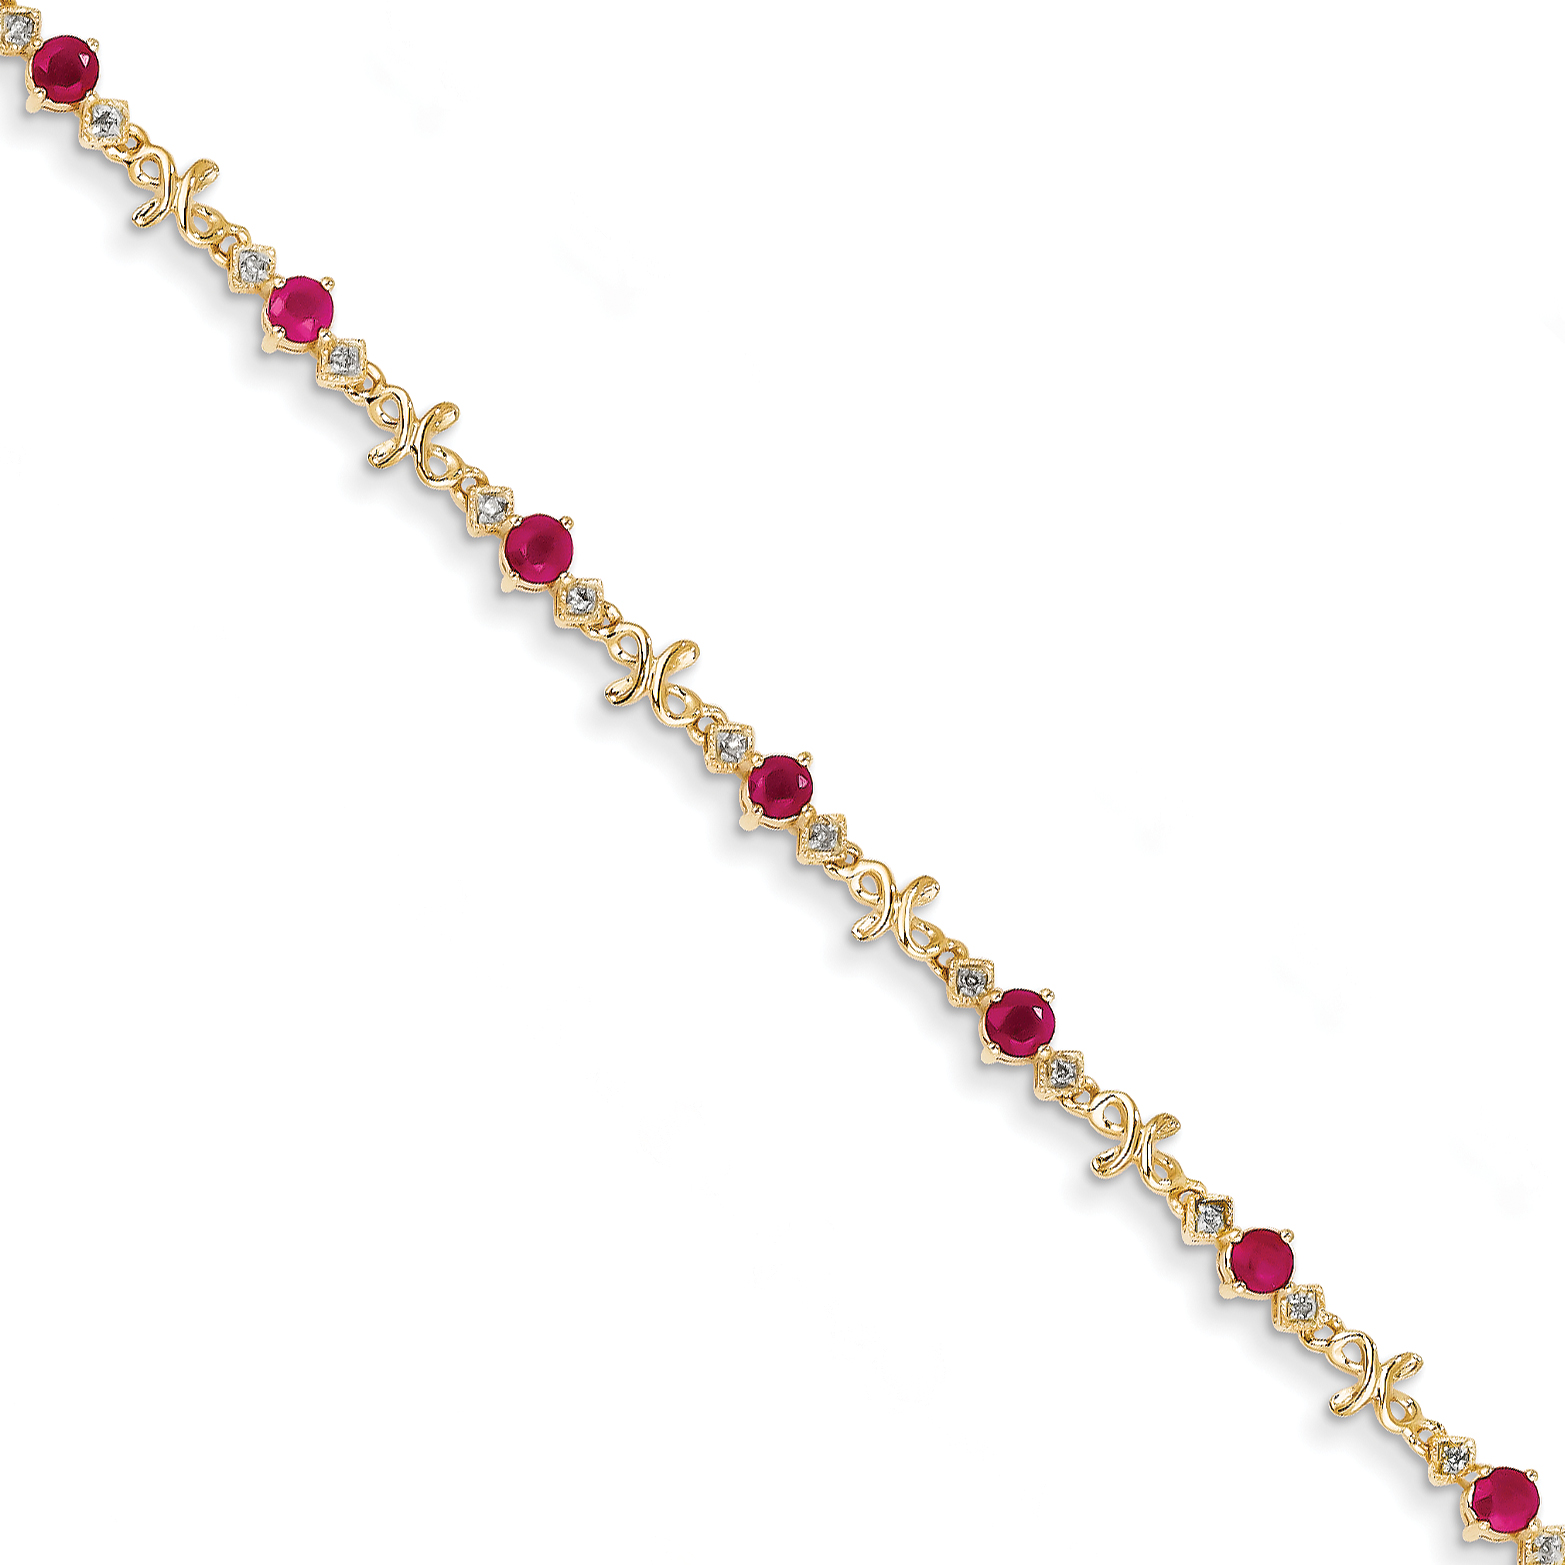 14k Diamond and Ruby Bracelet by Saris and Things QG